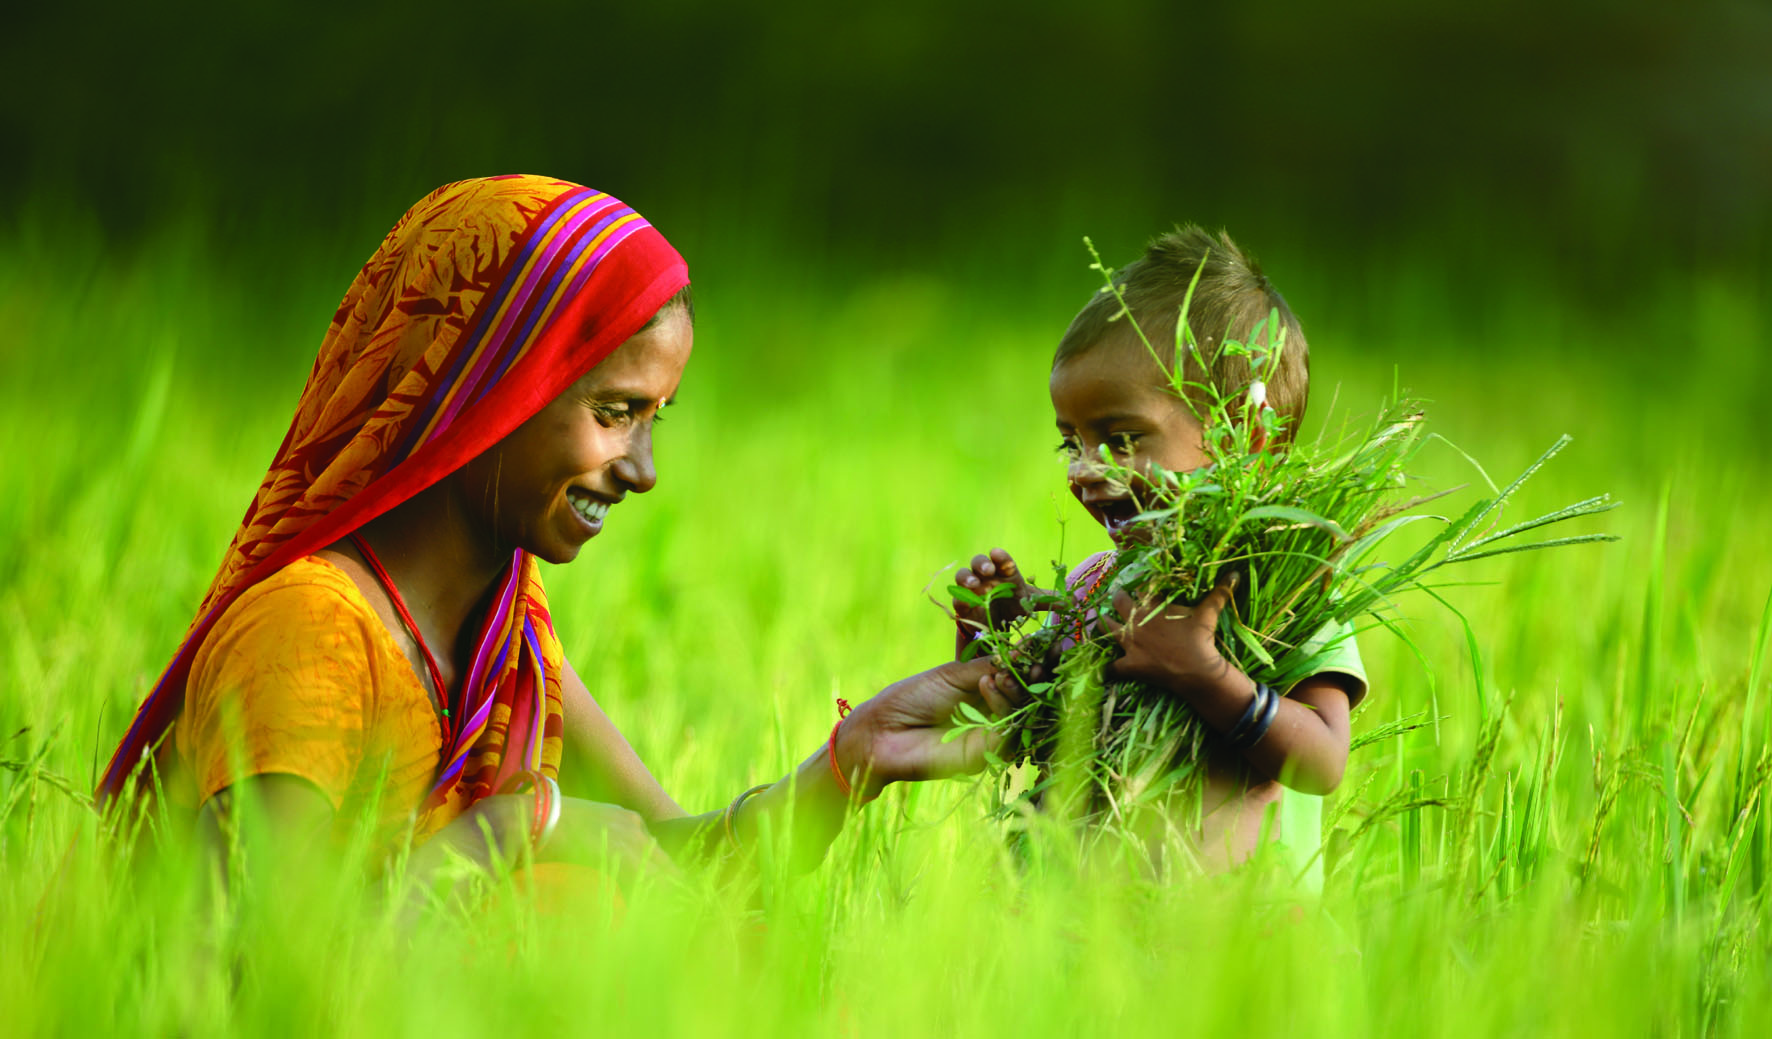 Mom and baby laughing at the rice field. Photo credit: GEAG